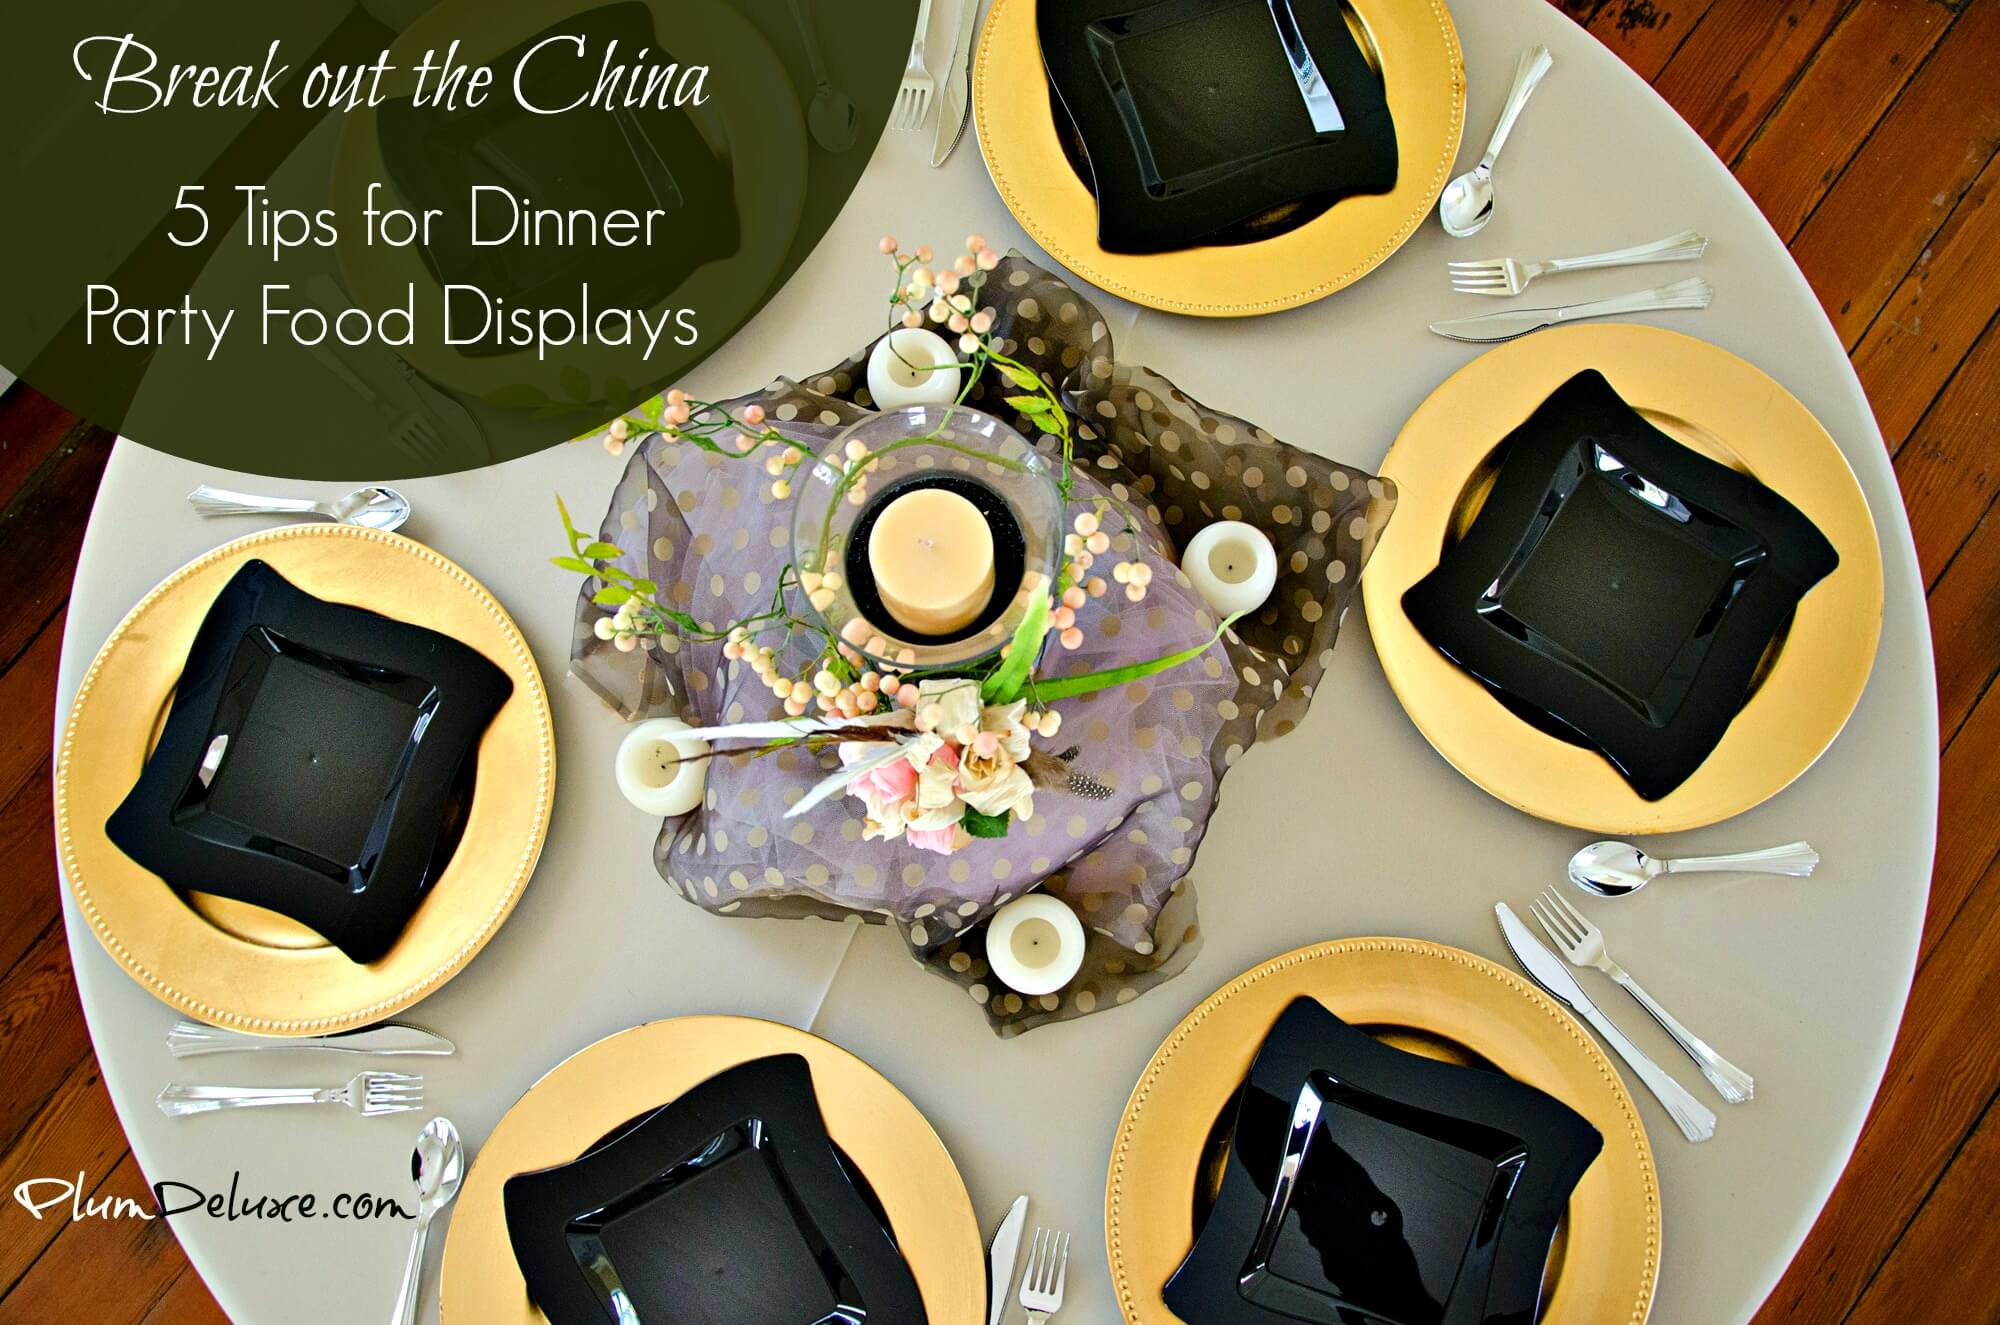 Break Out The China 5 Tips For Dinner Party Food Displays